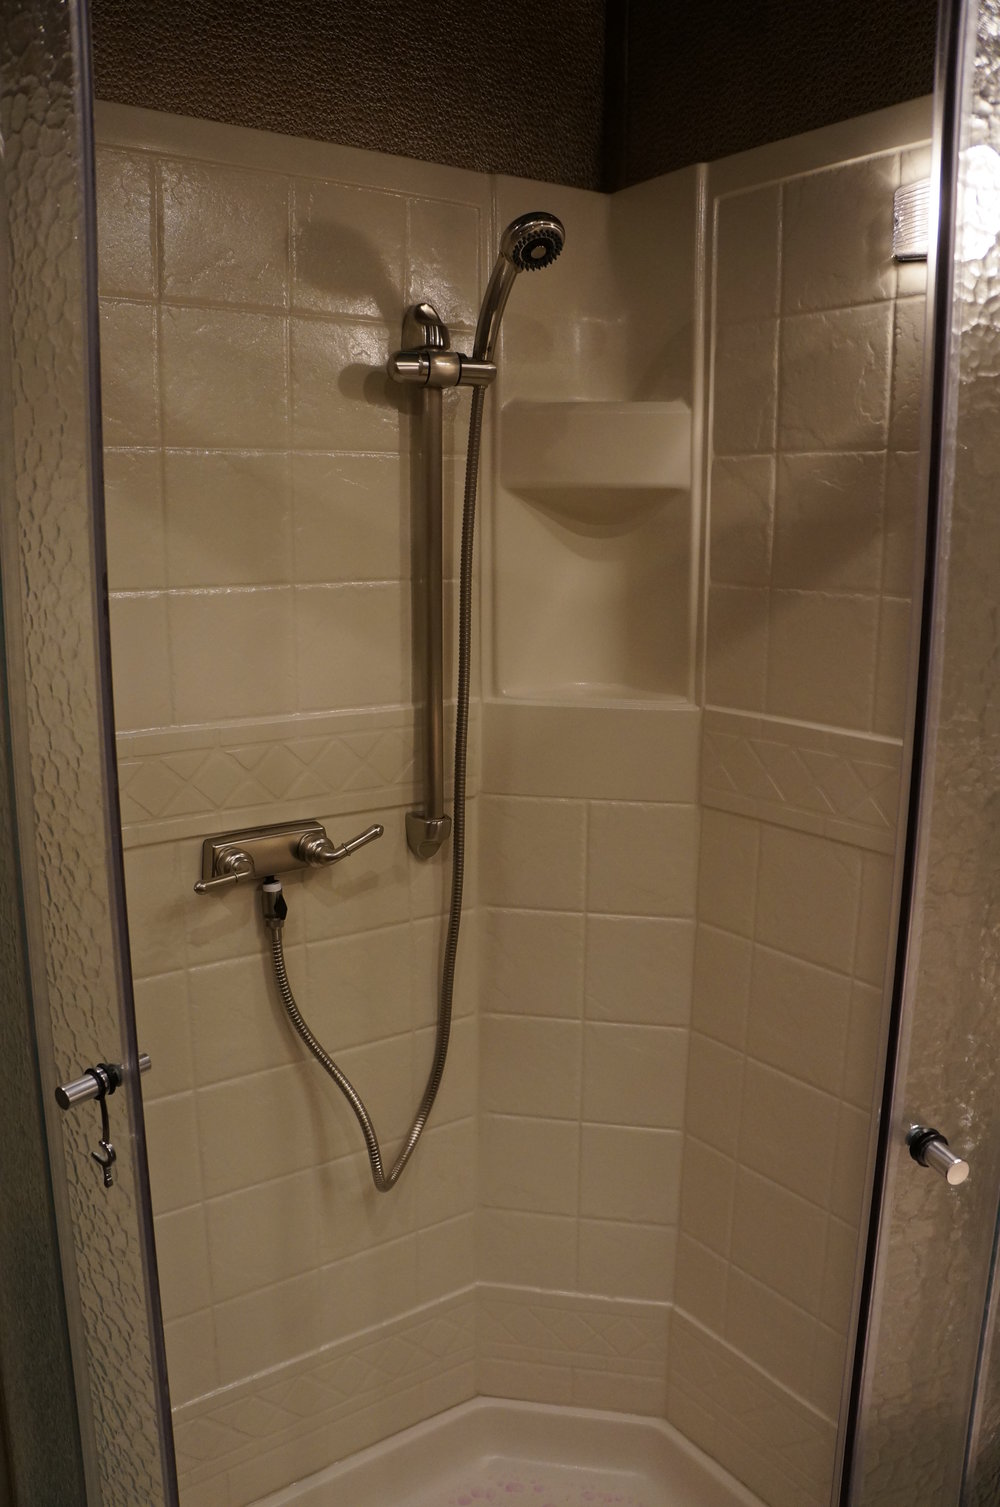 Almond Shower with Silver Faucet  & Shower Head on Slider Bar